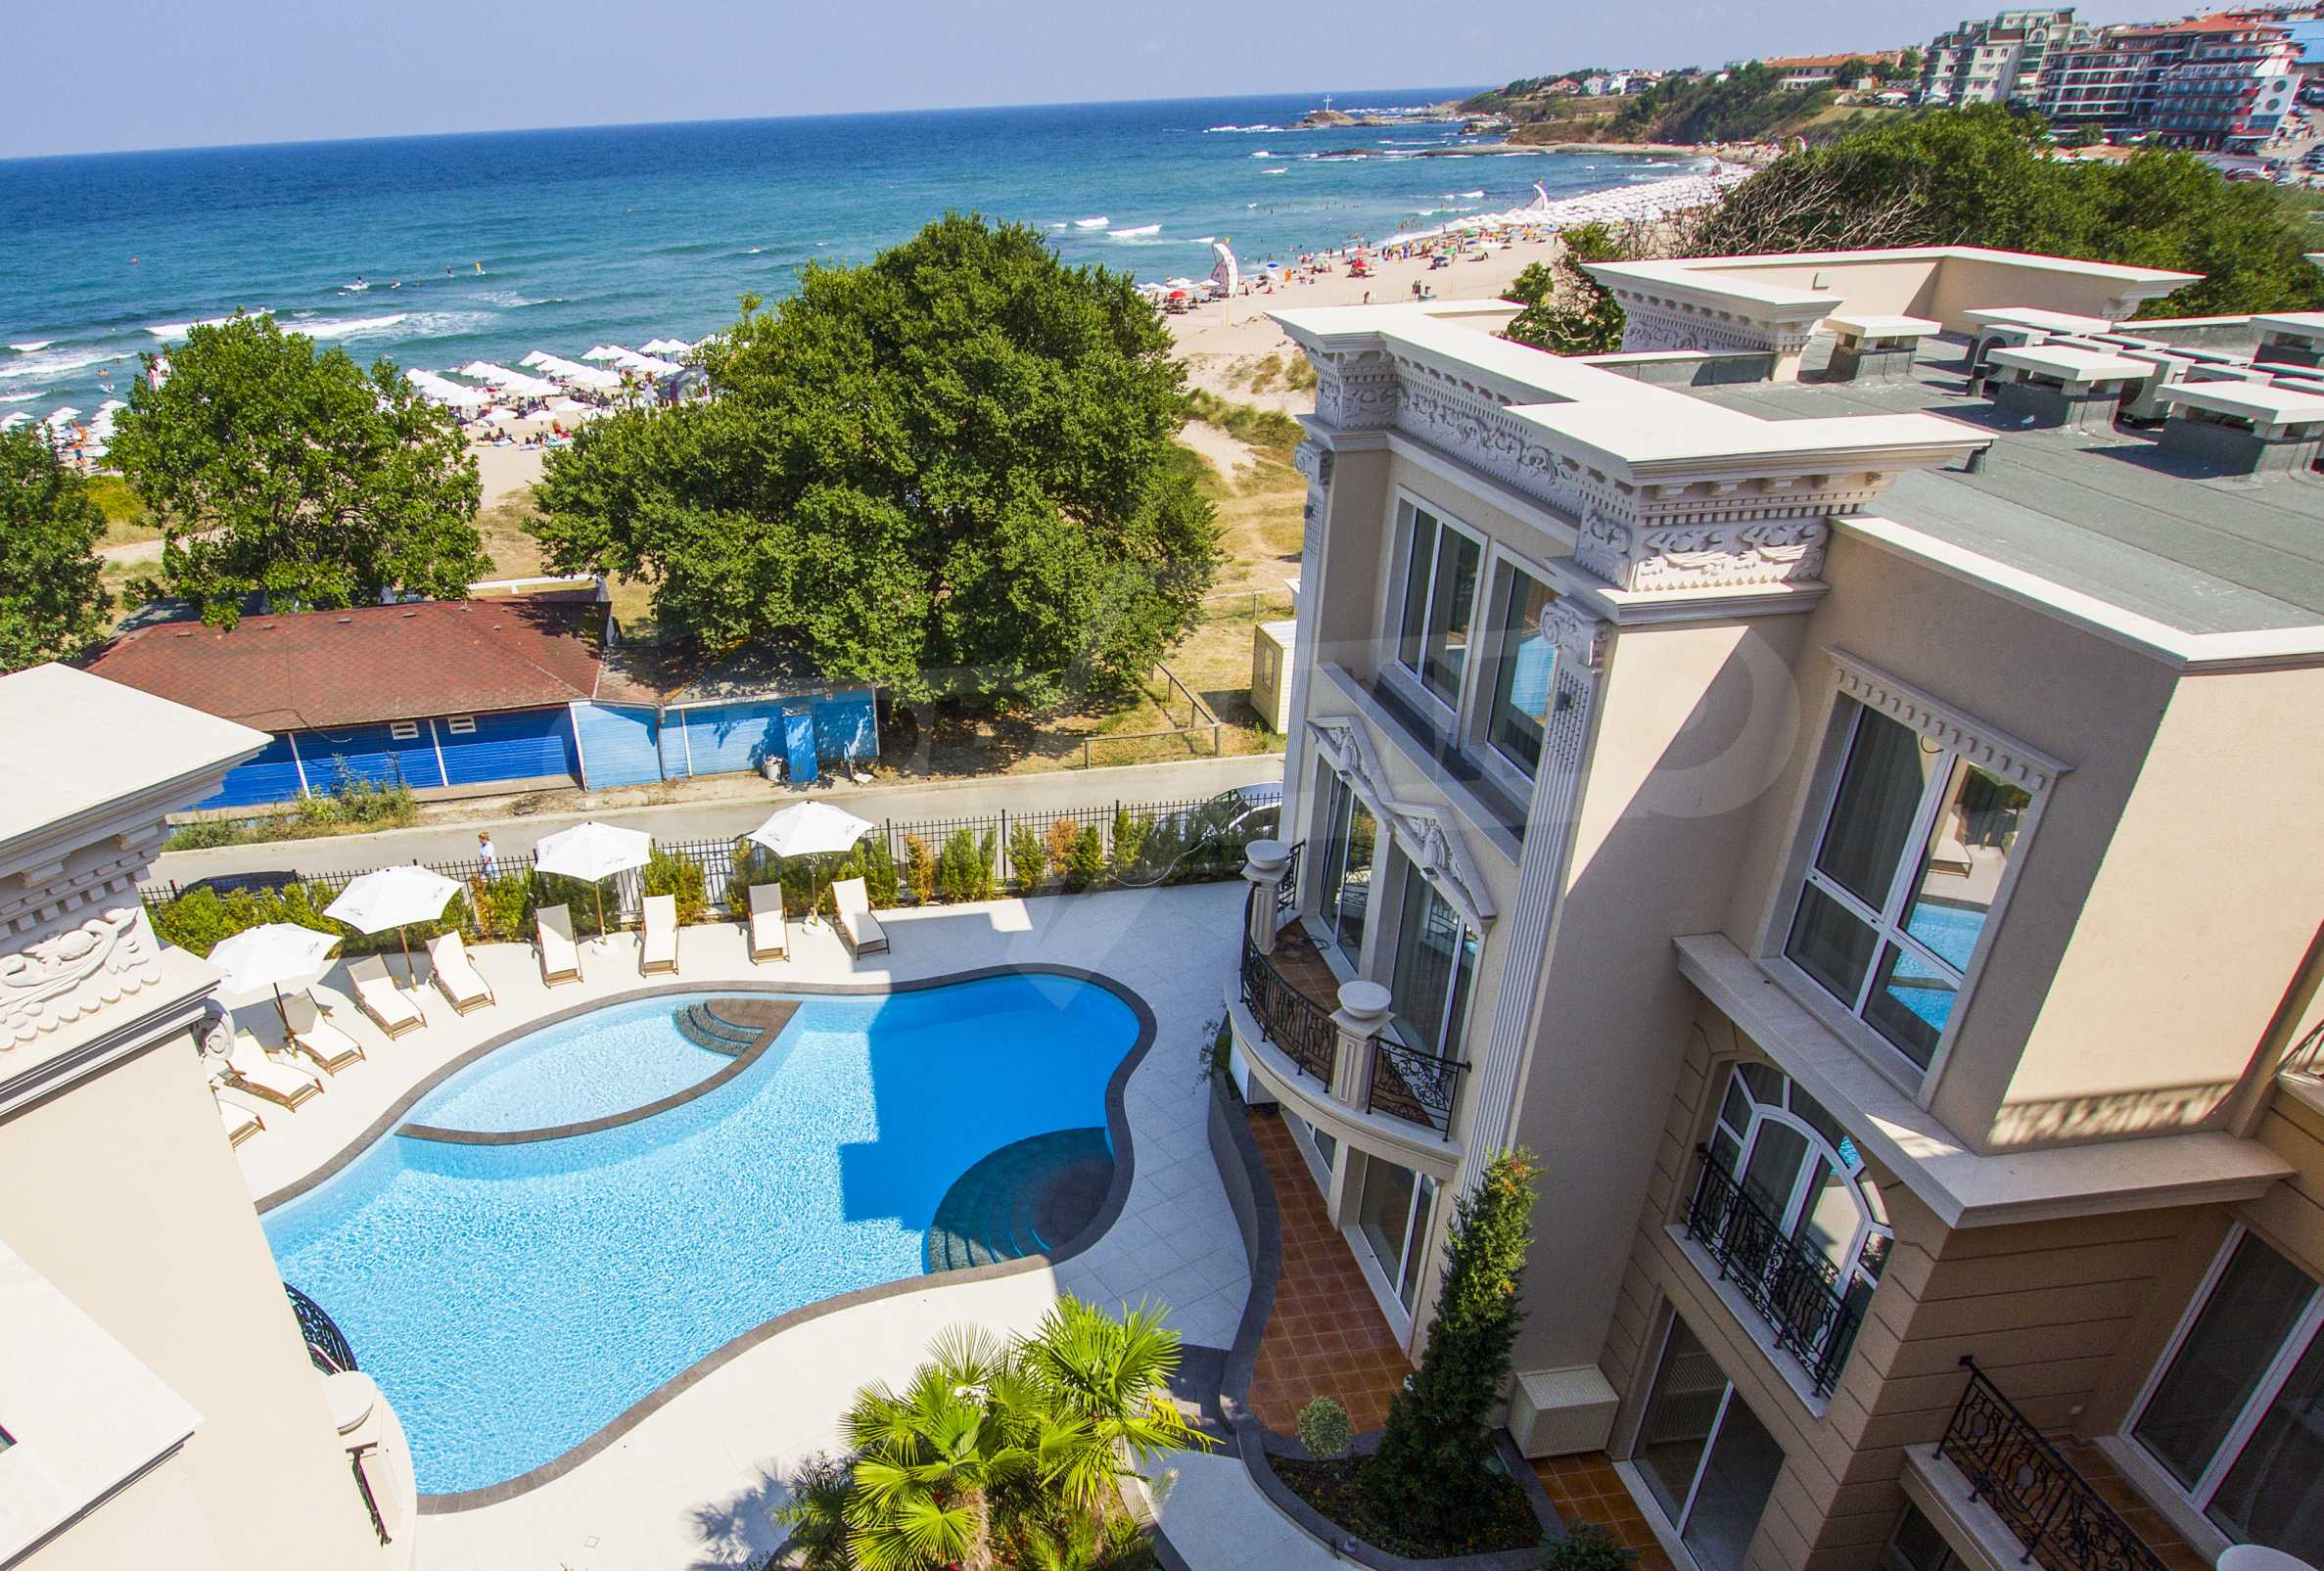 Luxurious apartment with sea views in Belle Époque remarkable residence by Central Beach 45